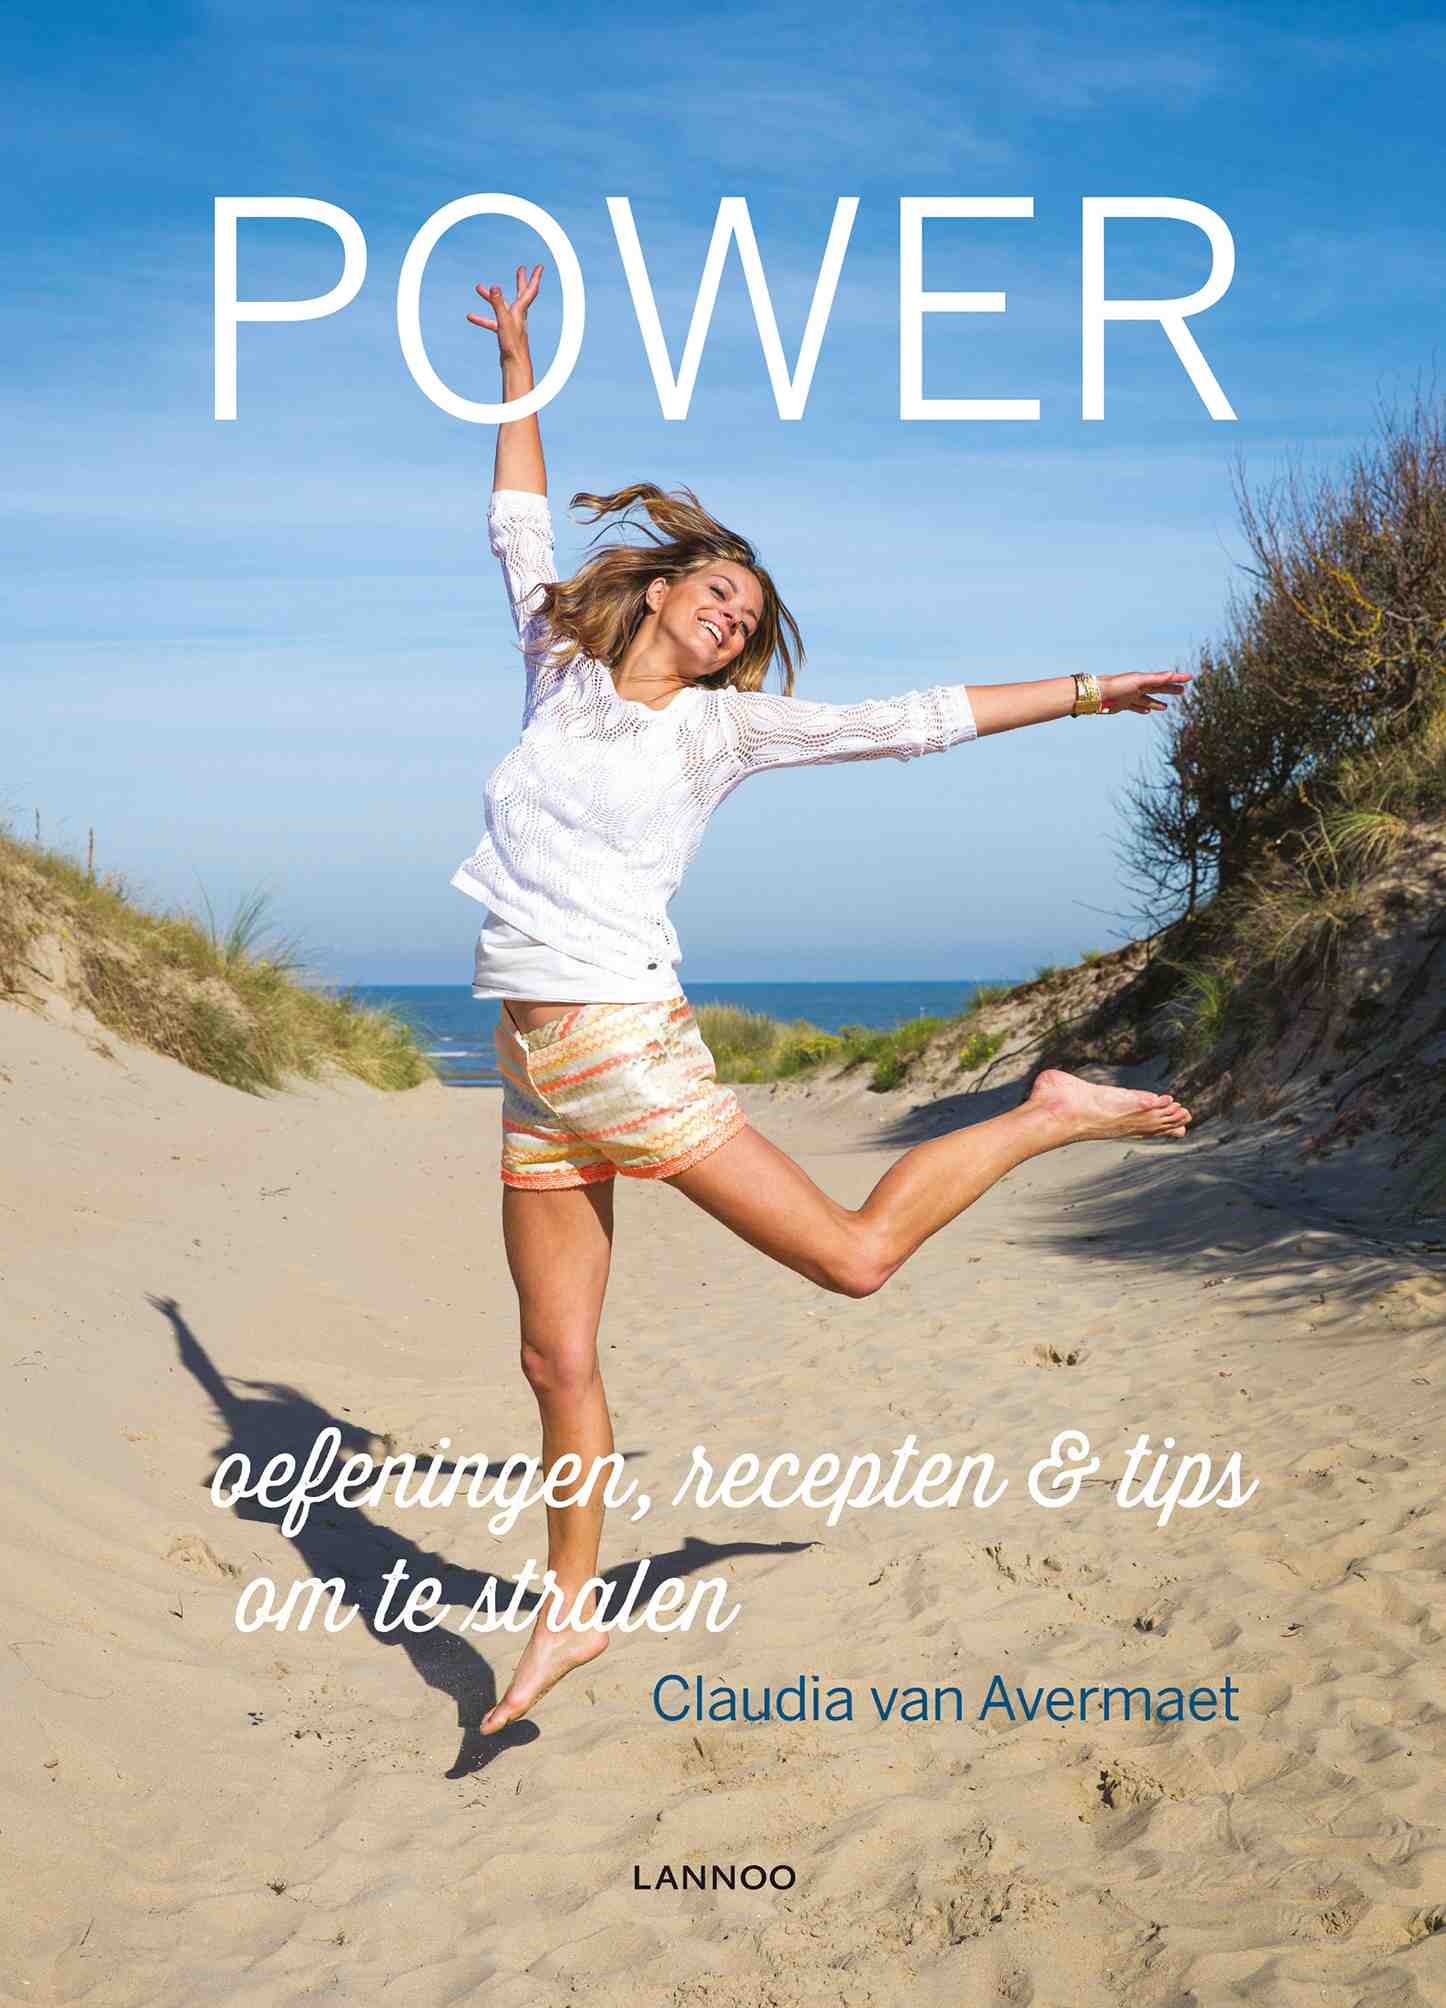 Power Claudia Van Avermaet